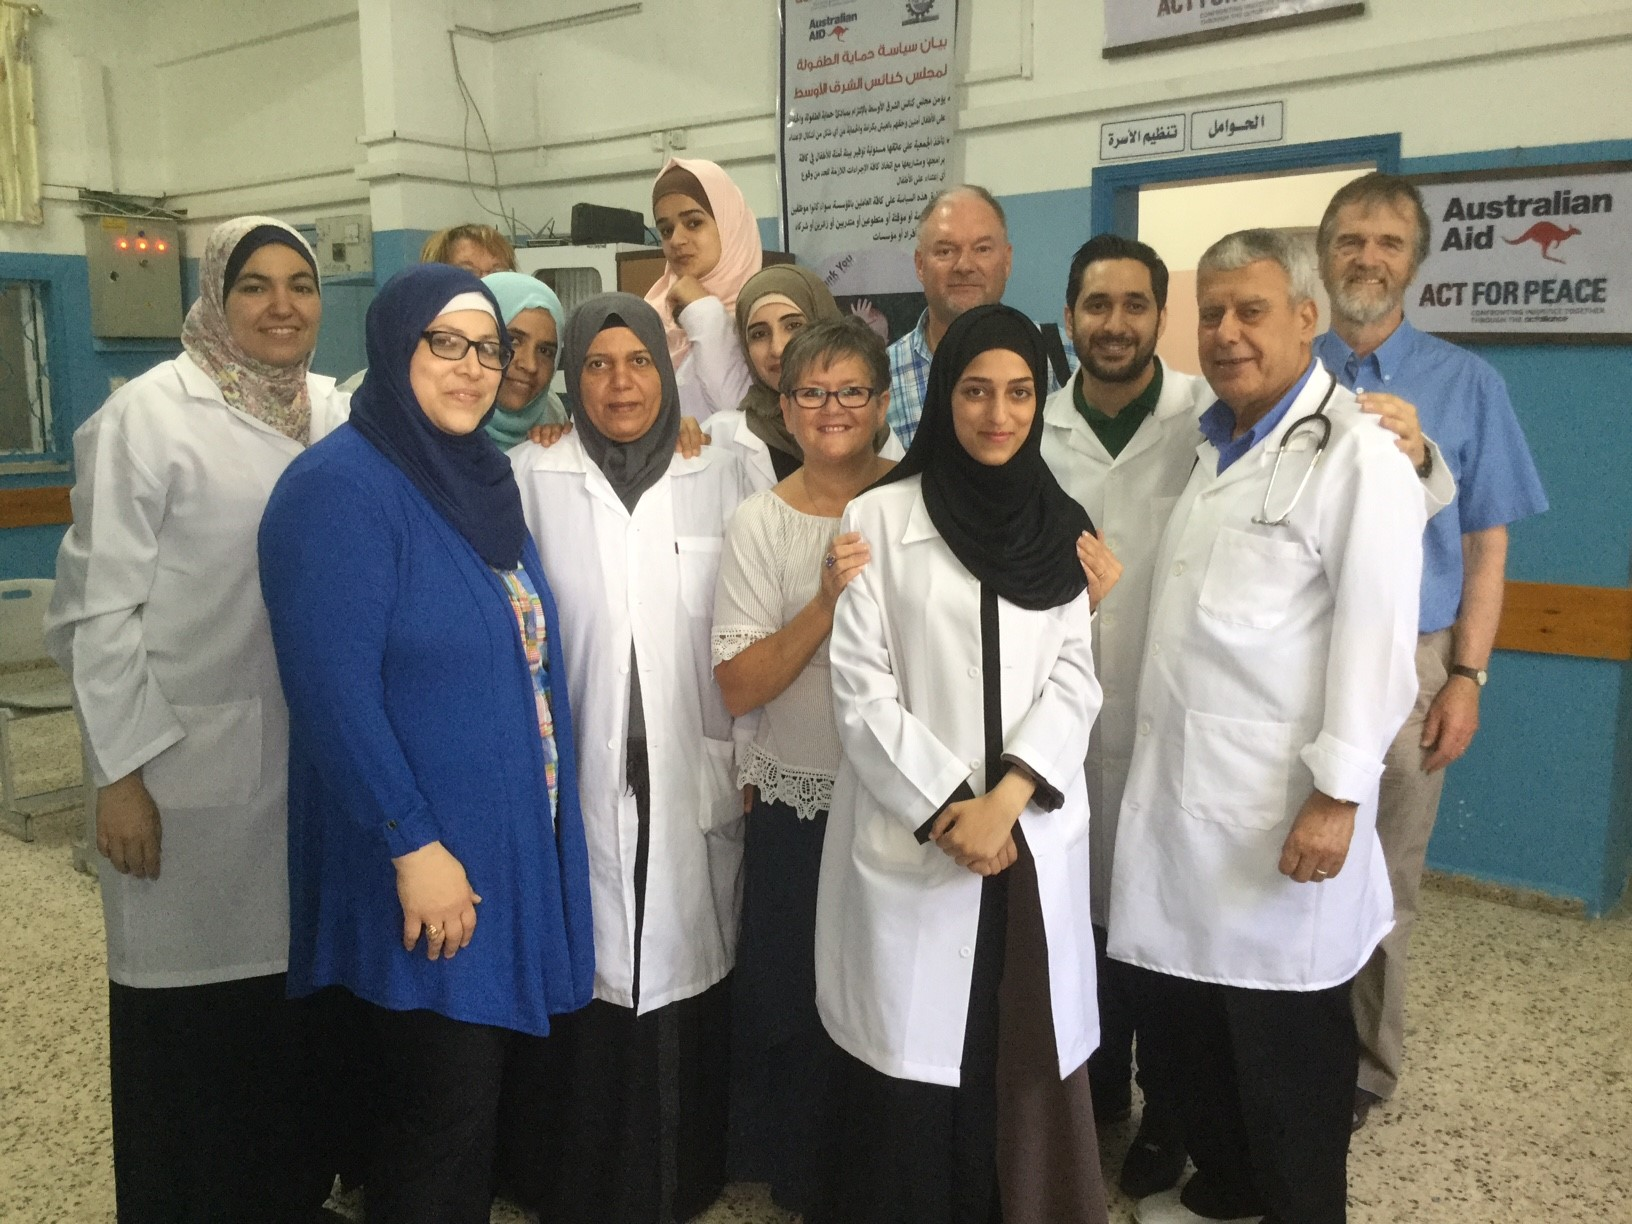 The medical staff, doctors, pharmacist, midwives and healthcare workers of the Near East Council of Churches in Rafah, Gaza.